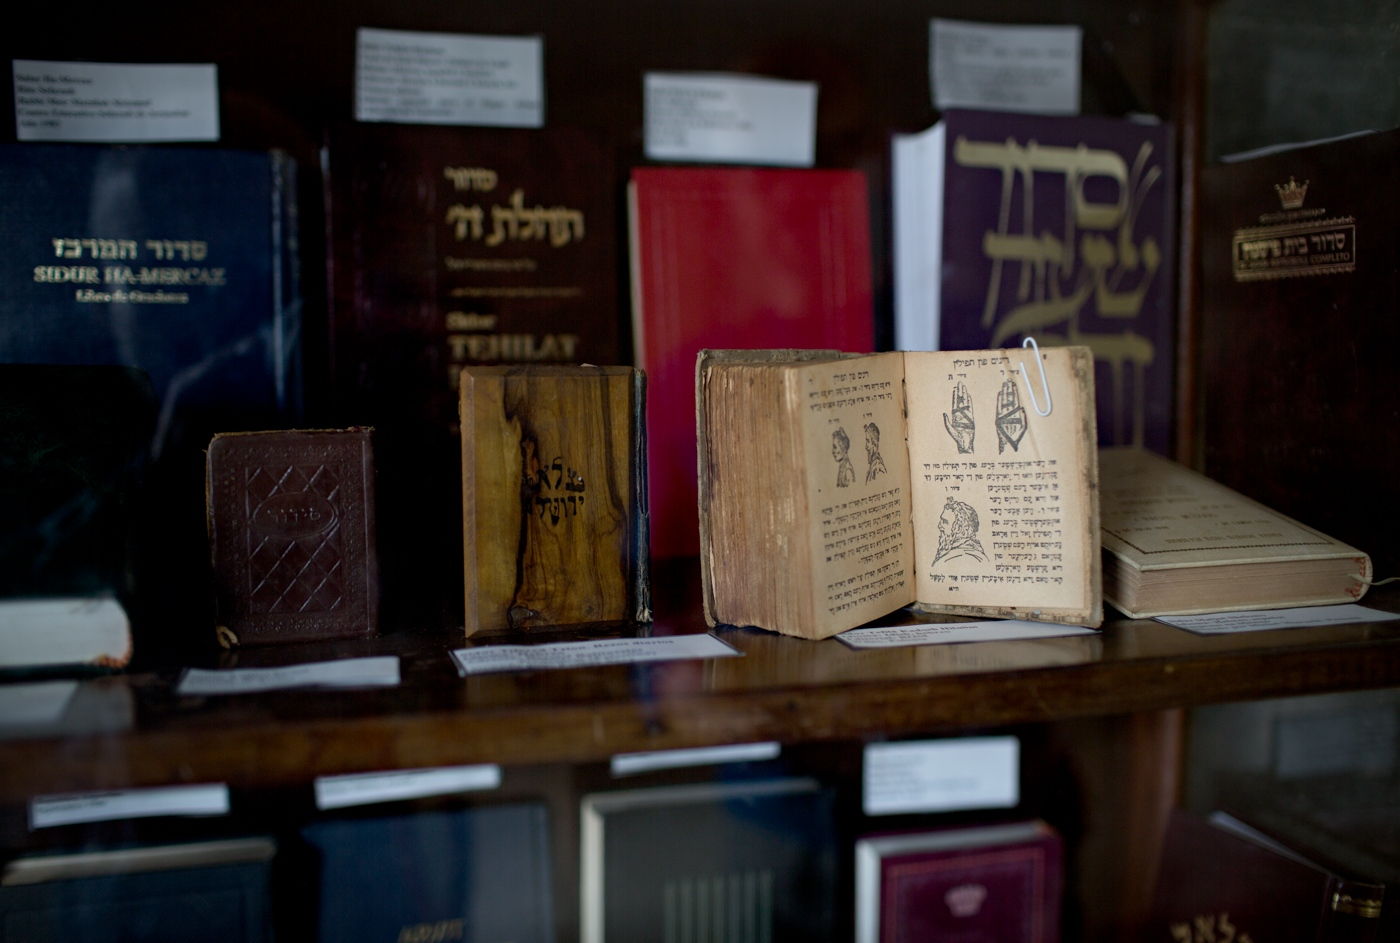 All three major religious faiths (Christianity, Judaism and Islam) are represented in Cuba. There is one synagogue in Havana for the approximately 1000 Jewish people now living in Havana.